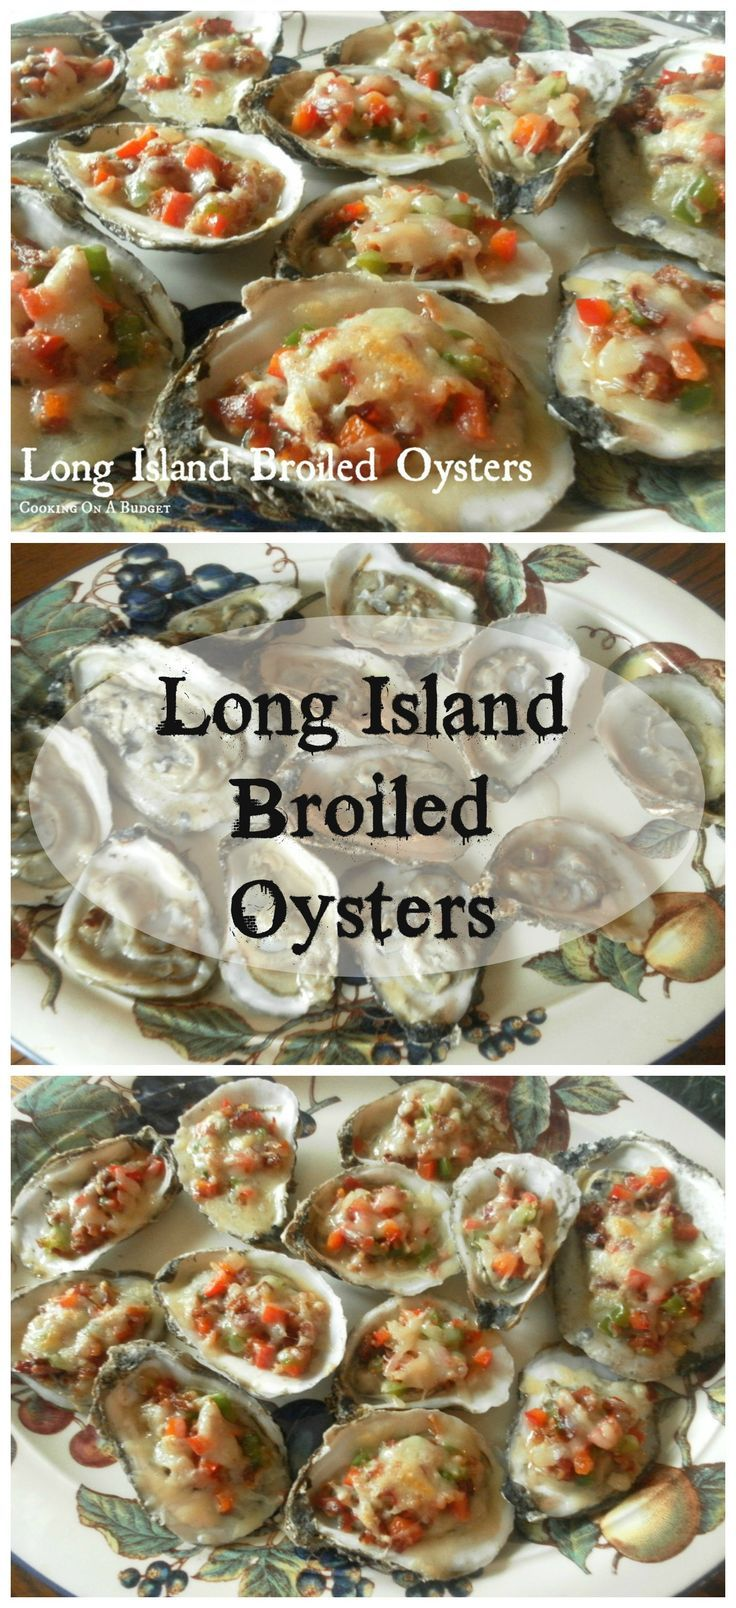 Long Island Broiled Oysters ~ this is a fantastic recipe for those that love oysters! It will be a phenomenal addition to any party or picnic you are having.